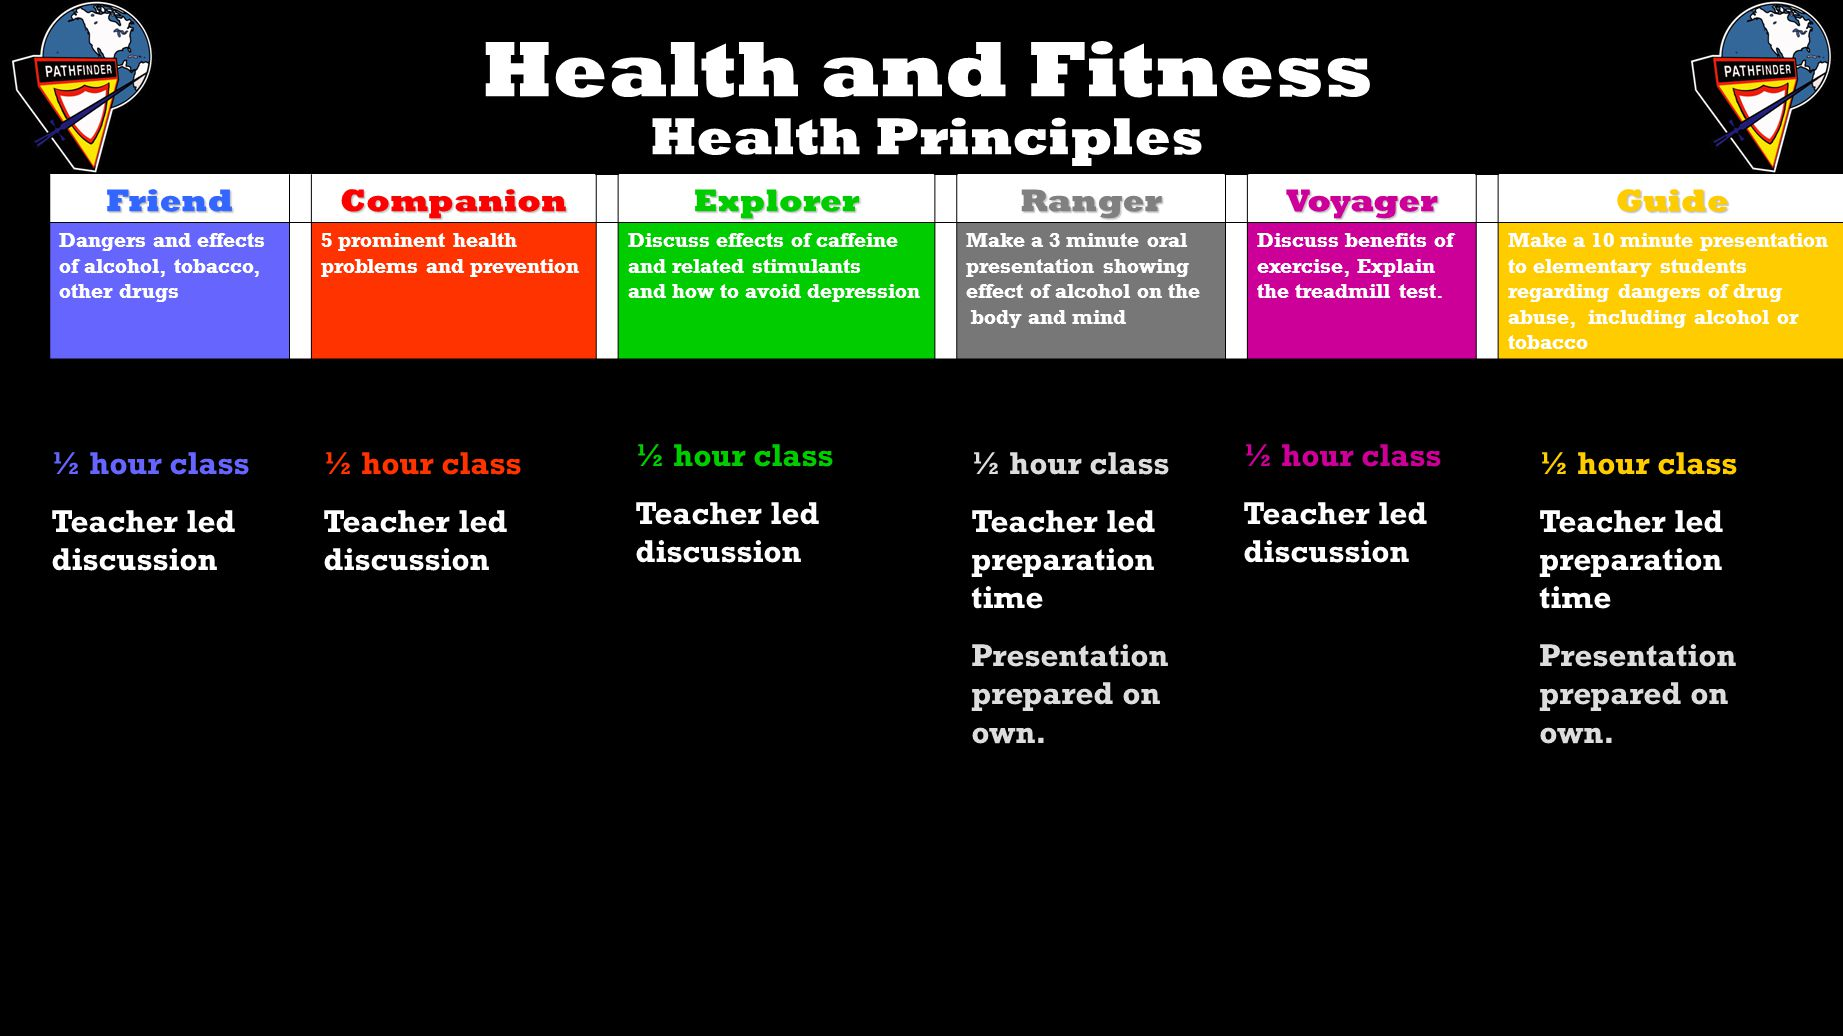 Health and Fitness Health Principles